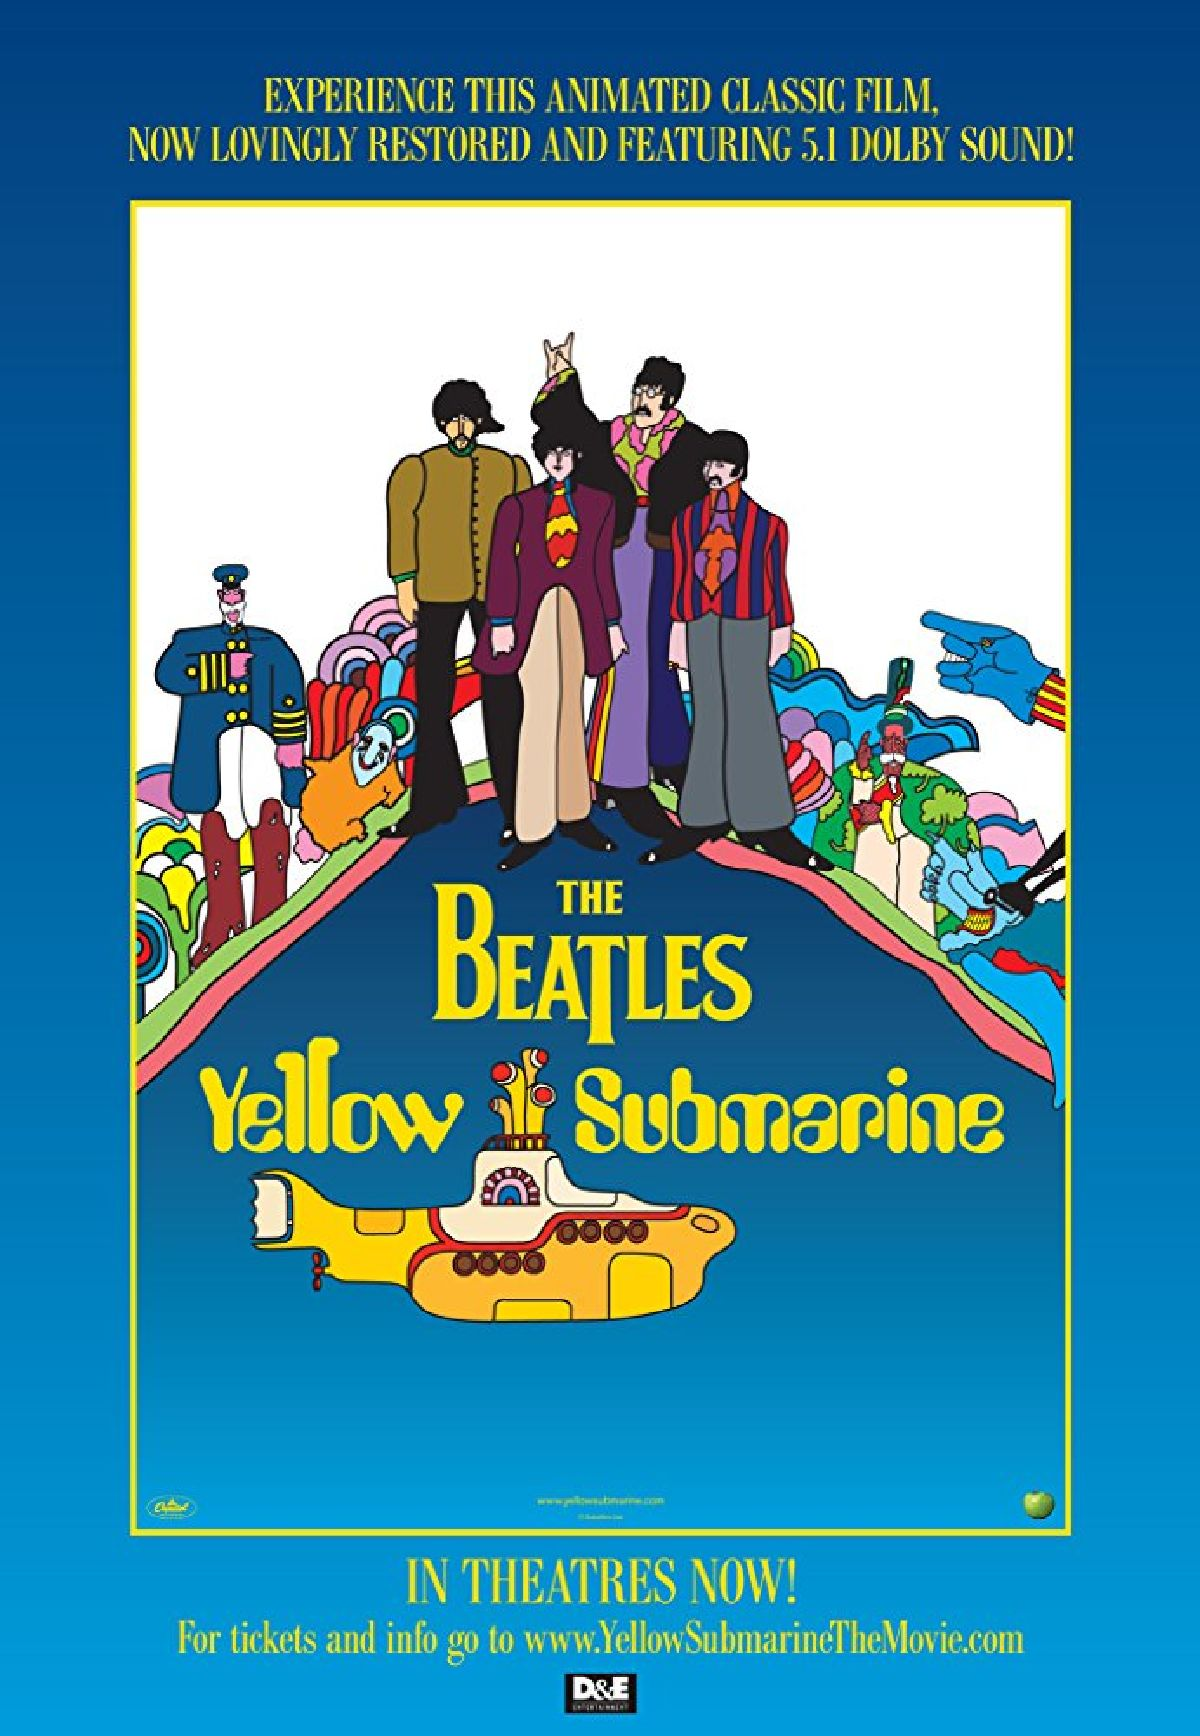 'Yellow Submarine' movie poster